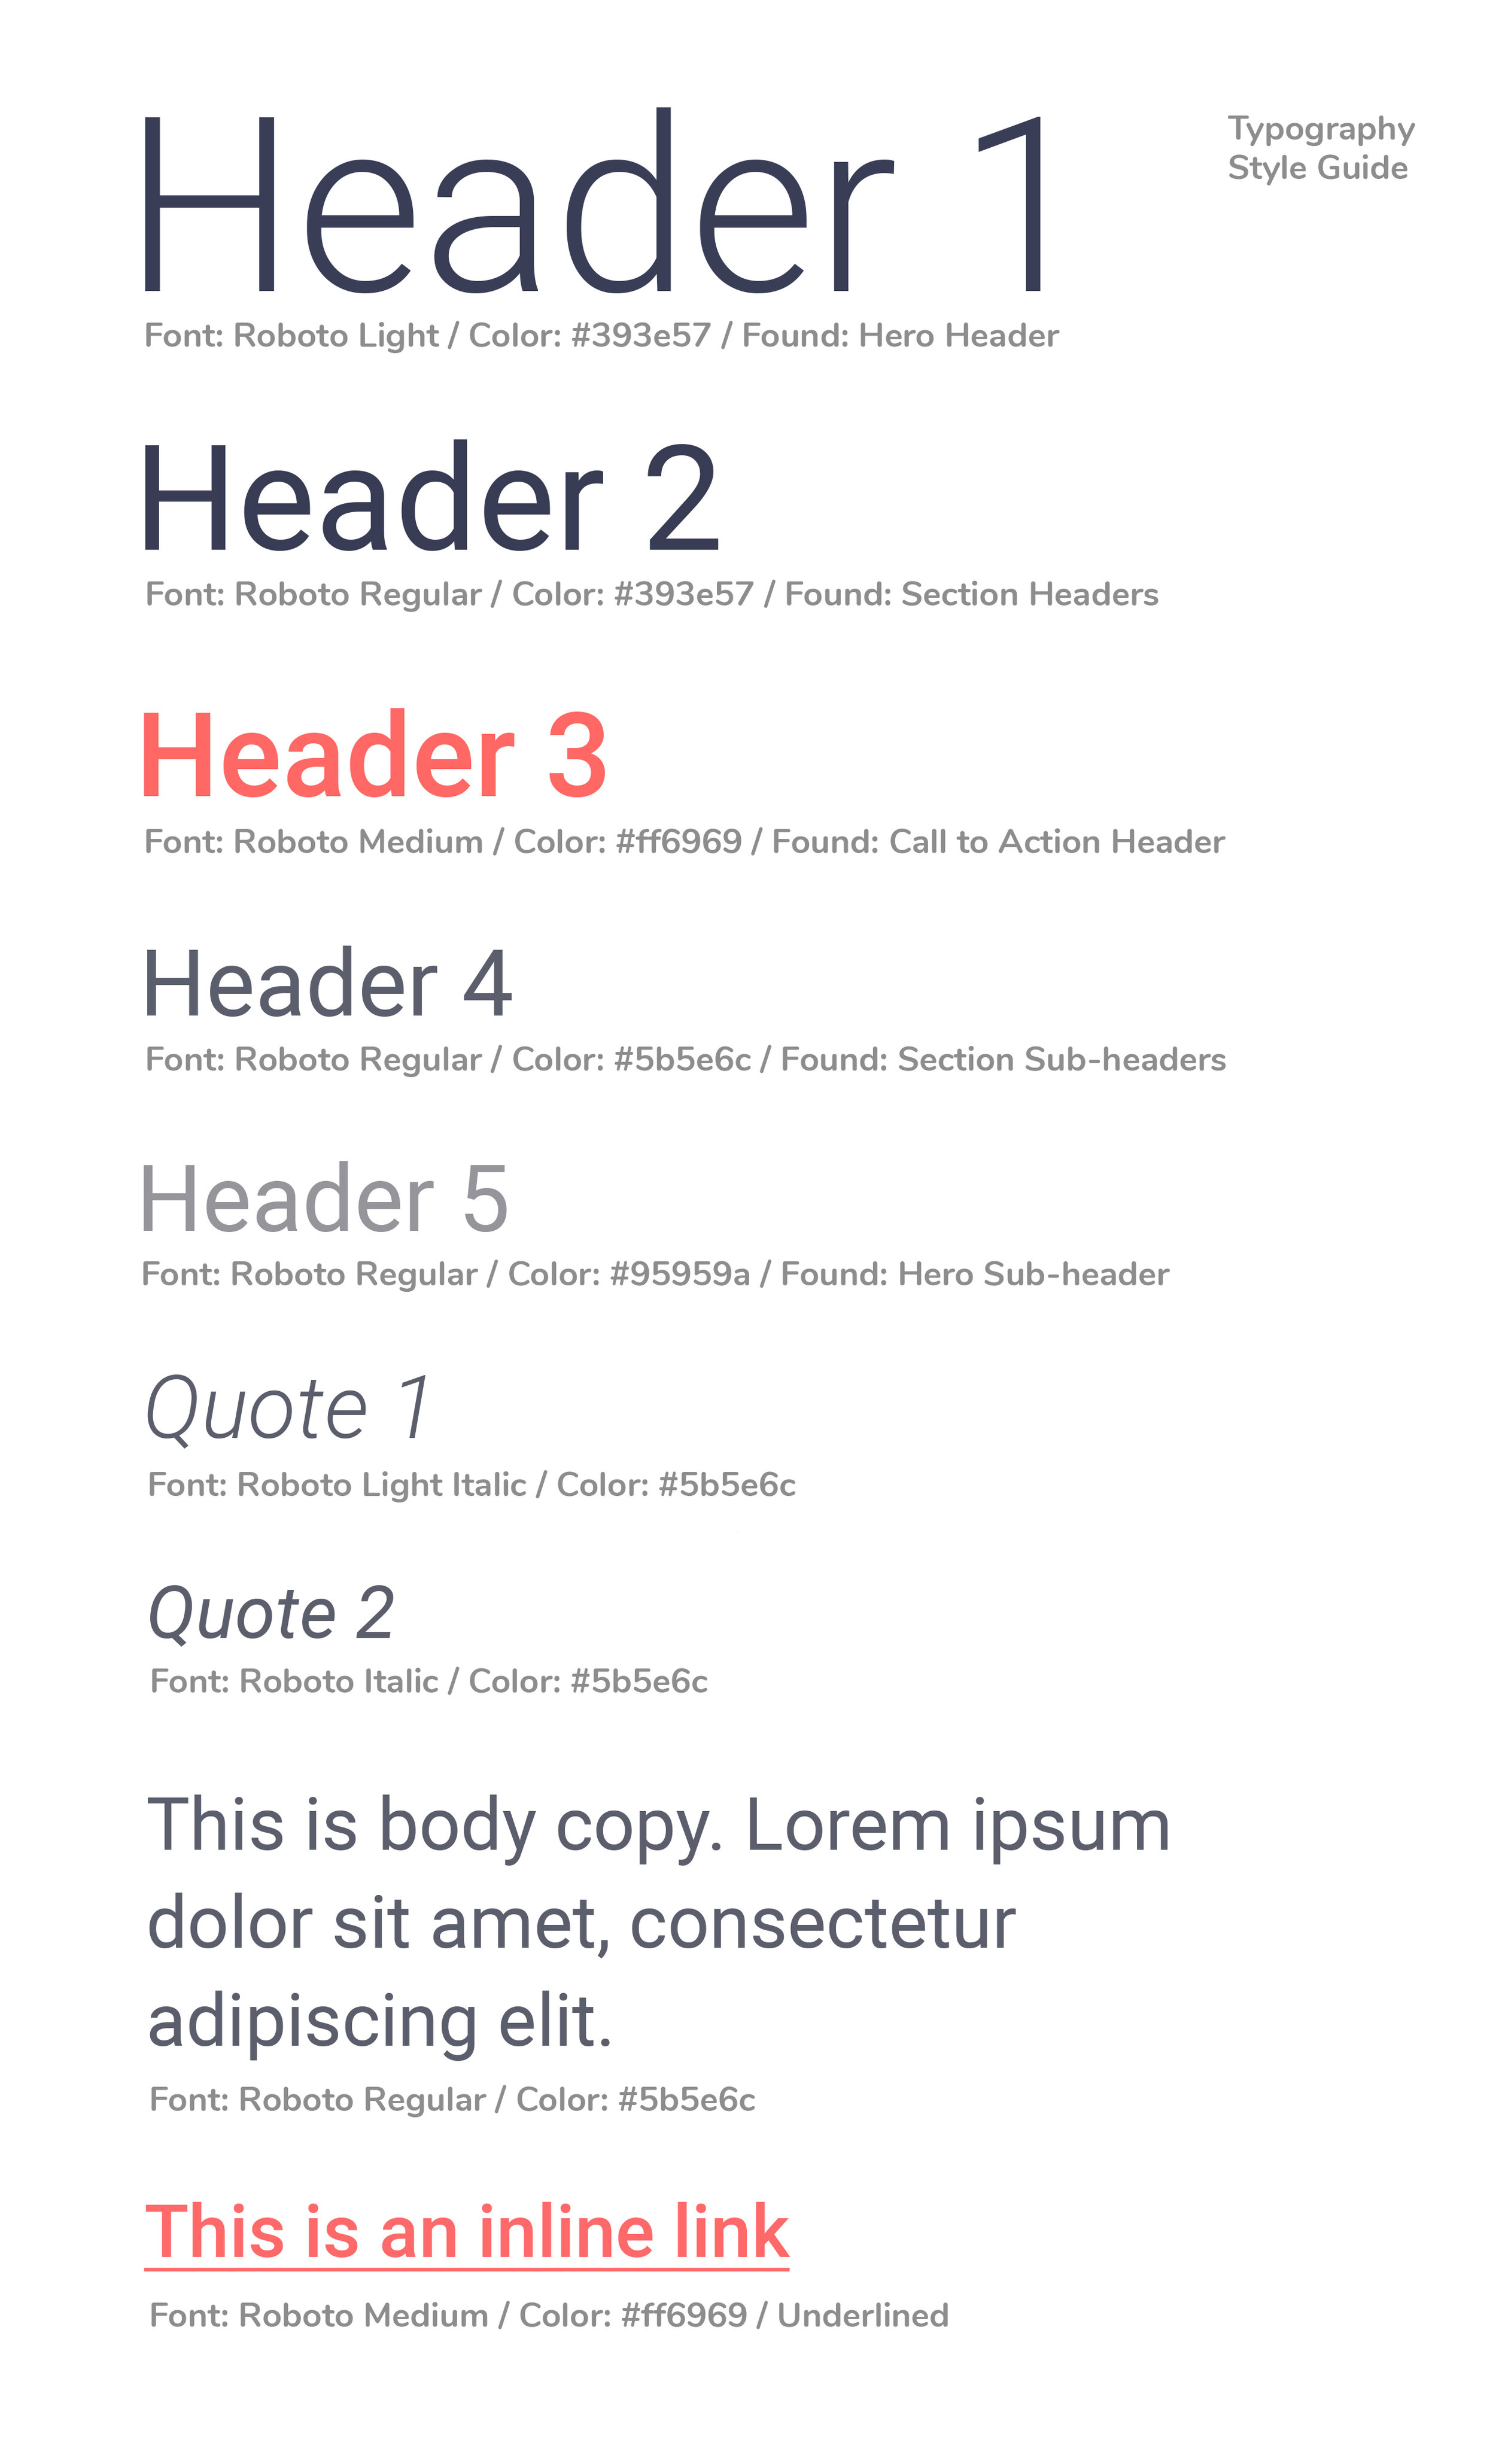 Style Guide 2018_Typography.jpg